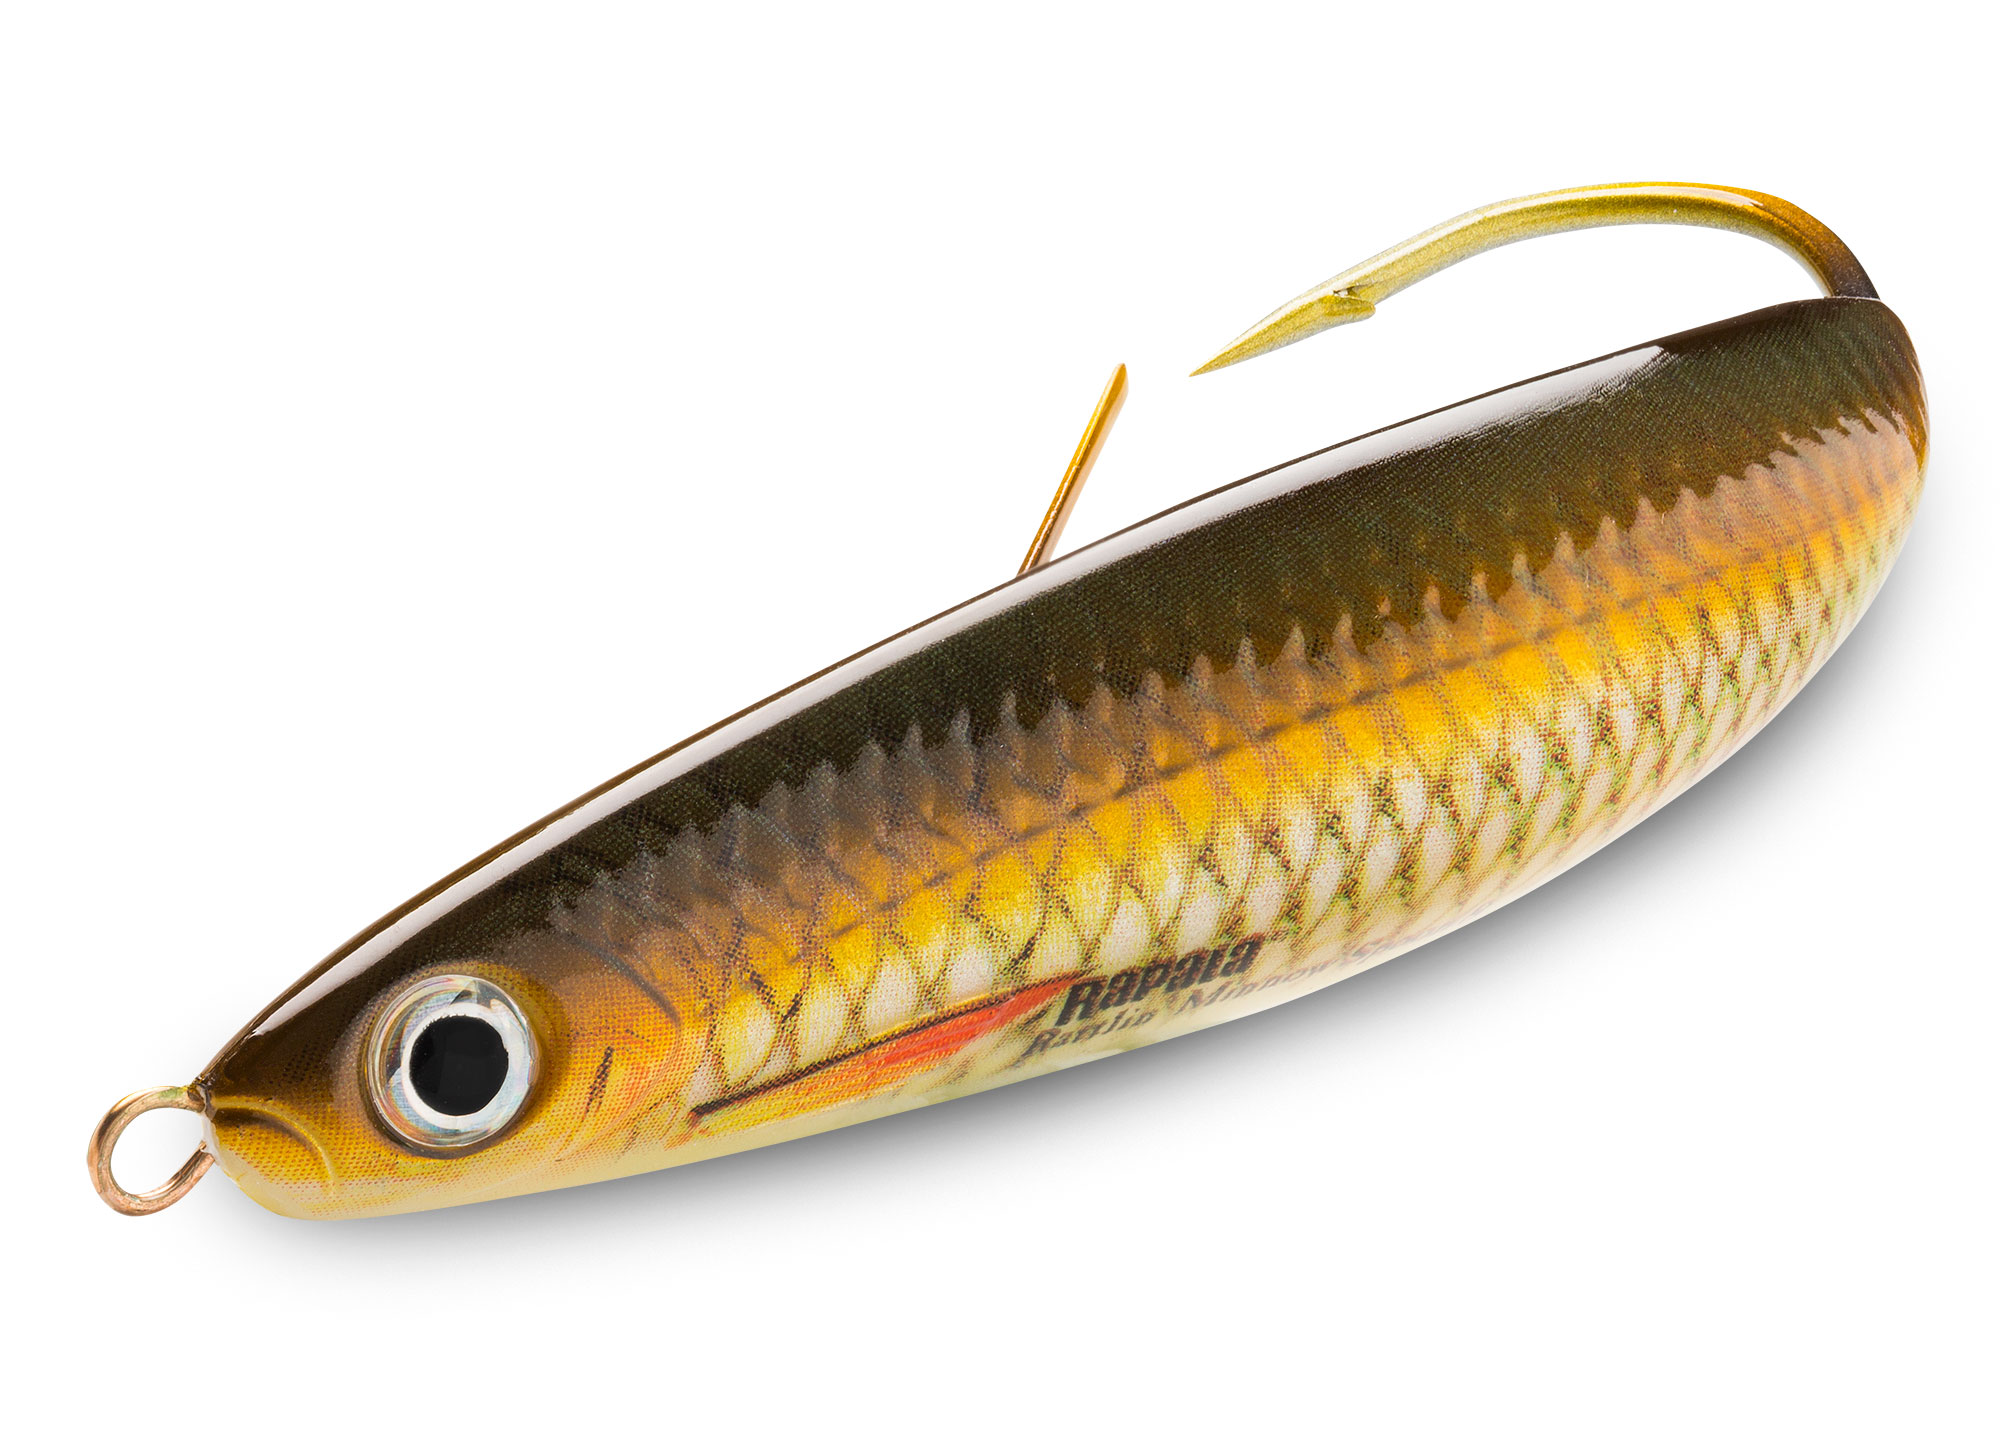 Rattlin' Minnow Spoon®